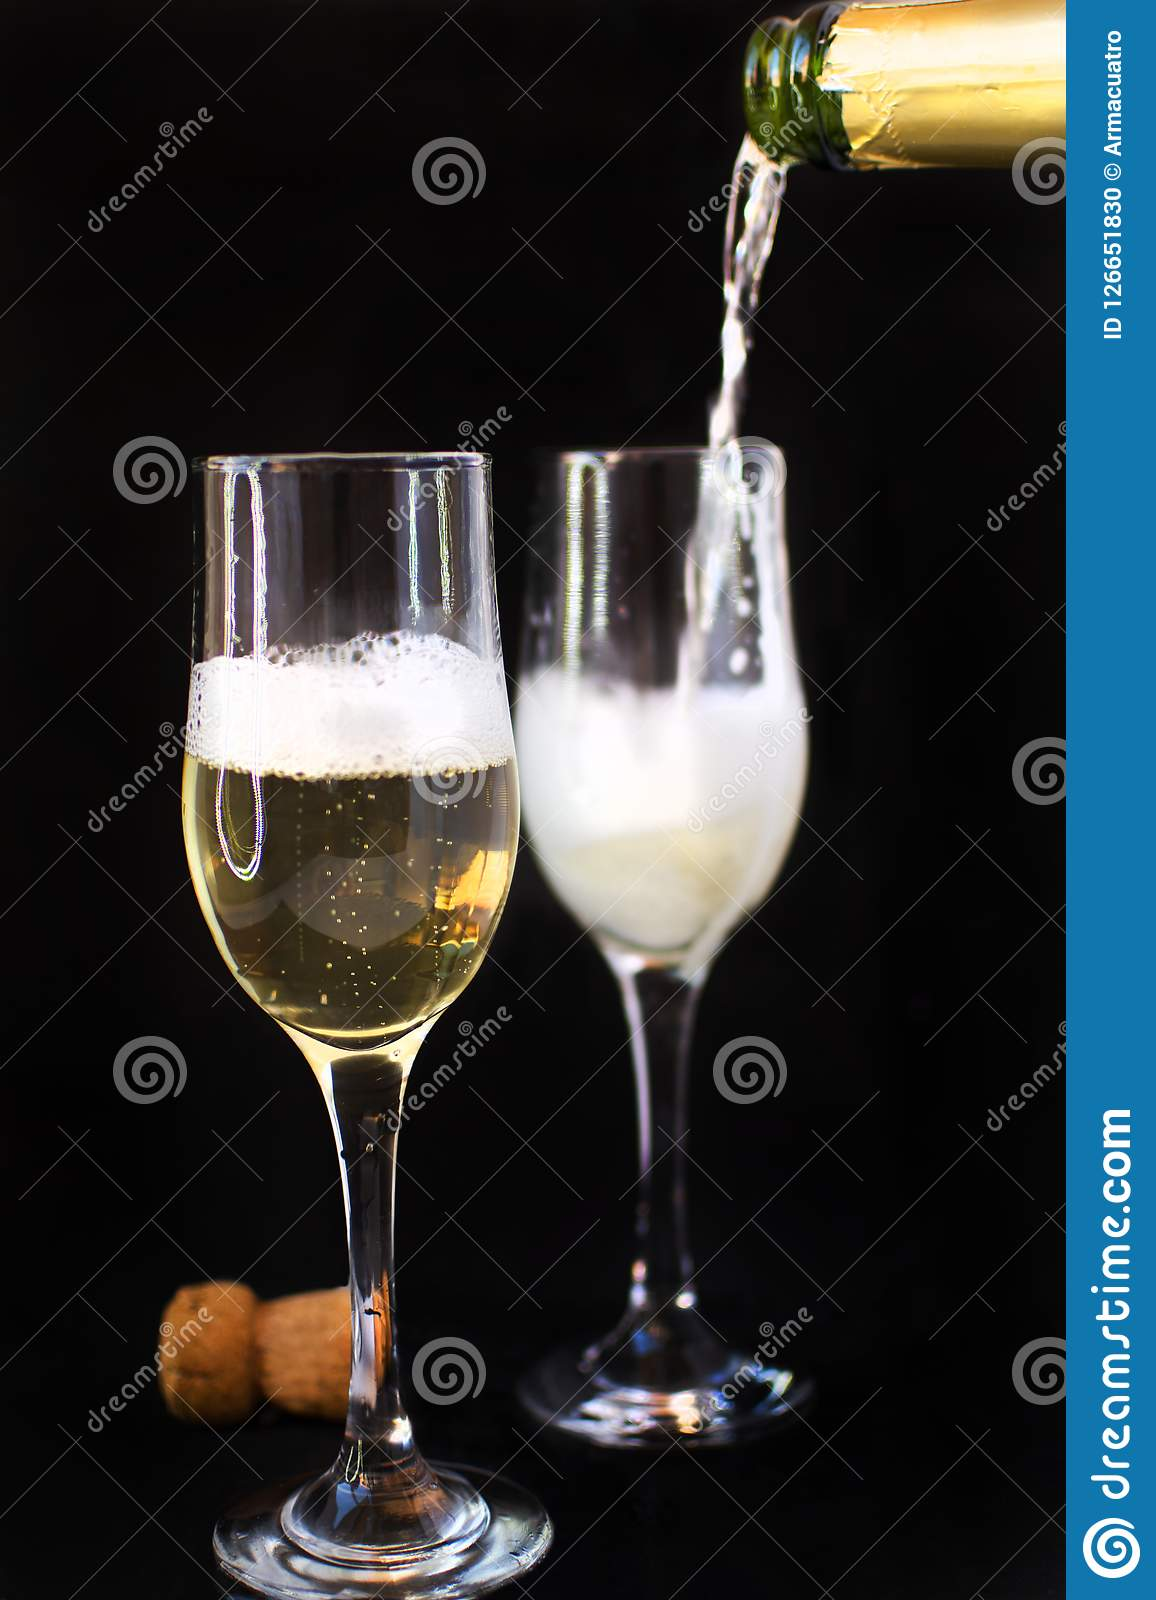 Champagne bottle with champagne glasses. Champagne bottle with champagne glasses.